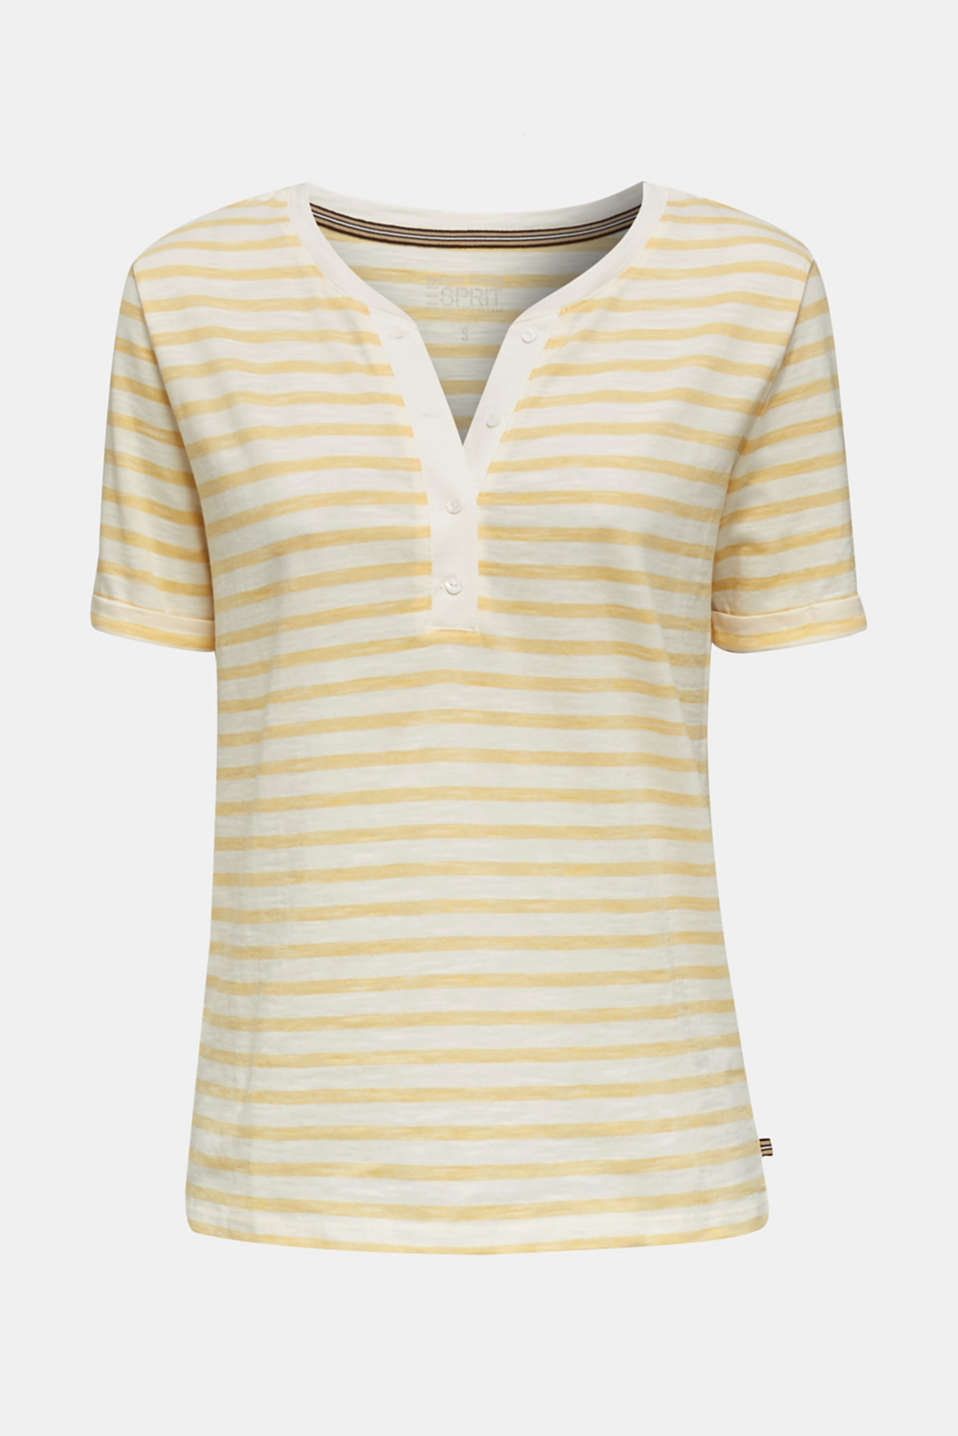 Striped Henley T-shirt, 100% organic cotton, YELLOW 3, detail image number 6